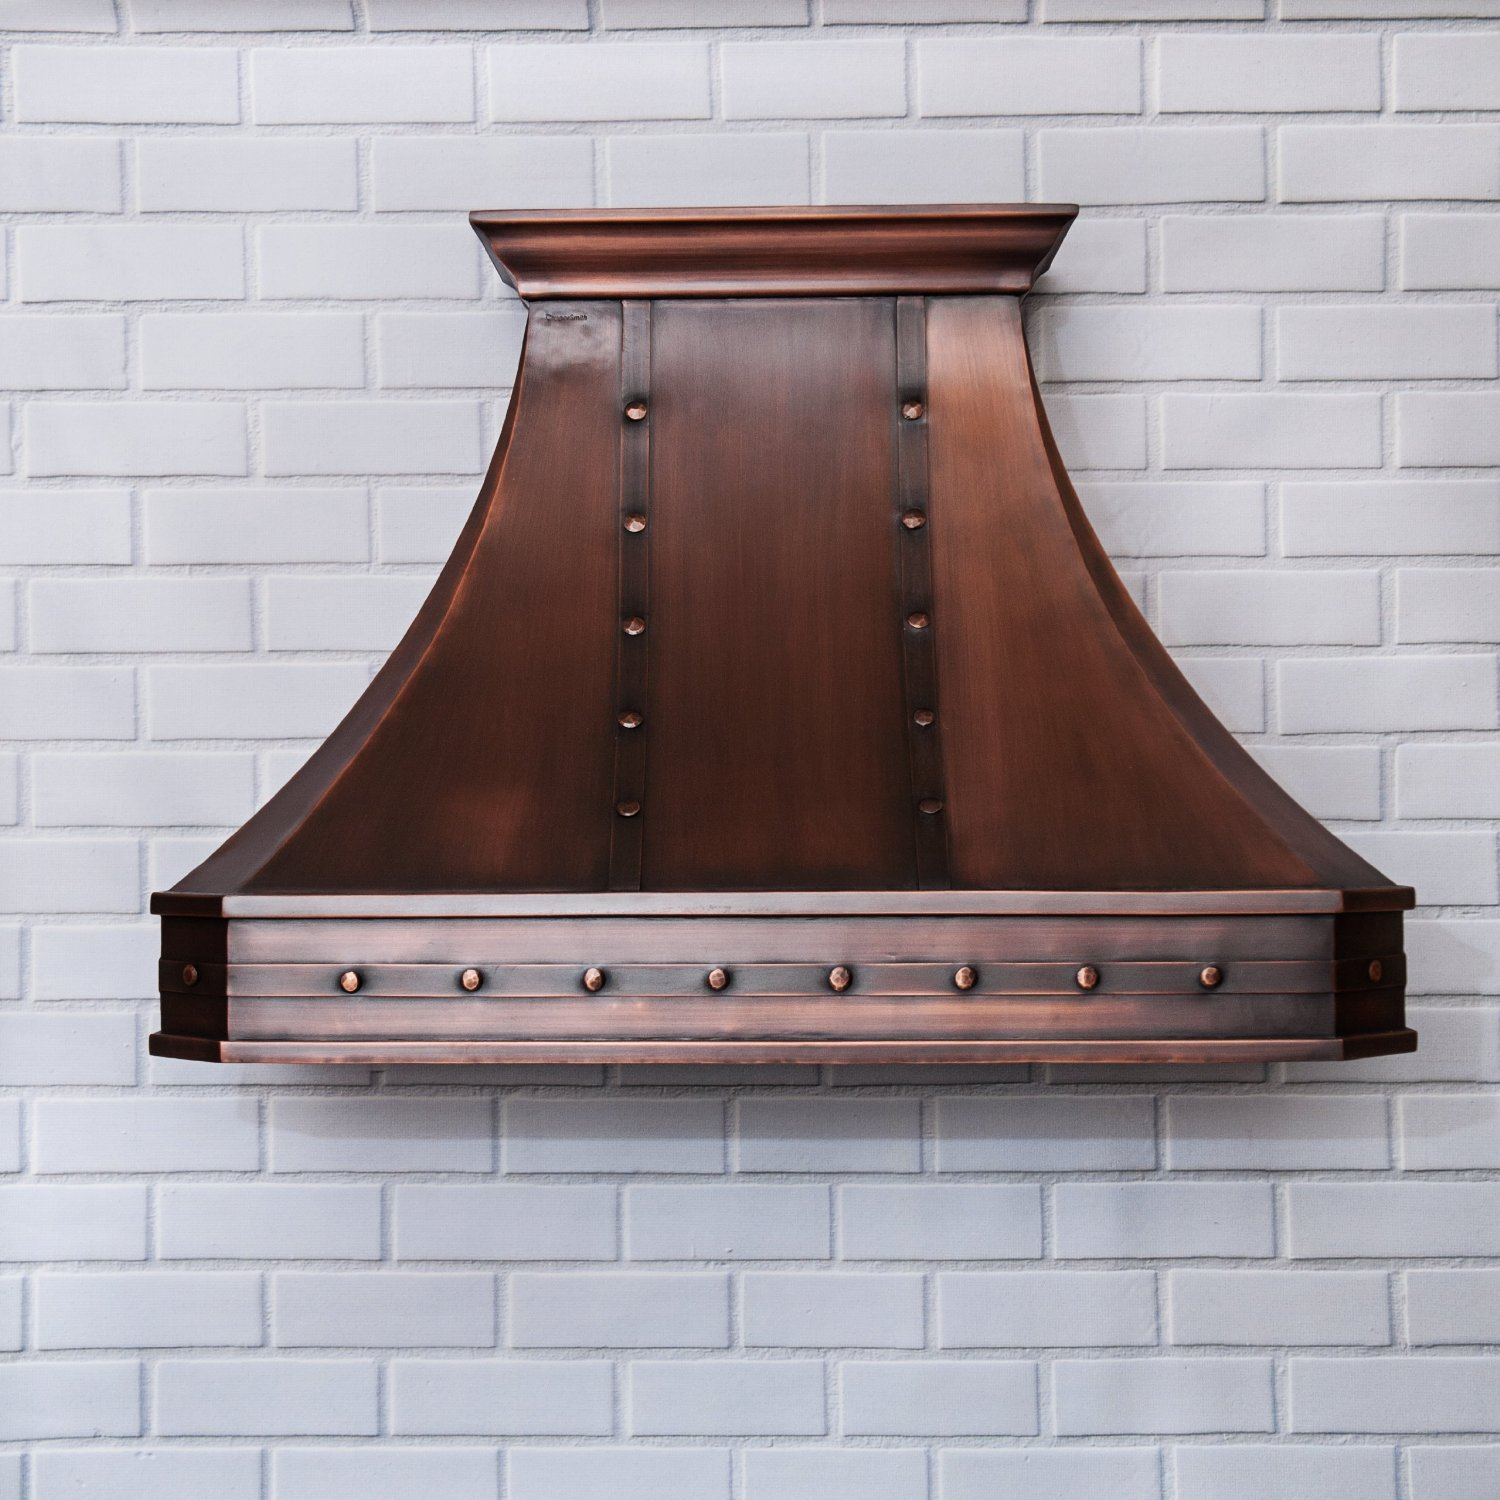 hand hammered copper vent hood with straps in a kitchen